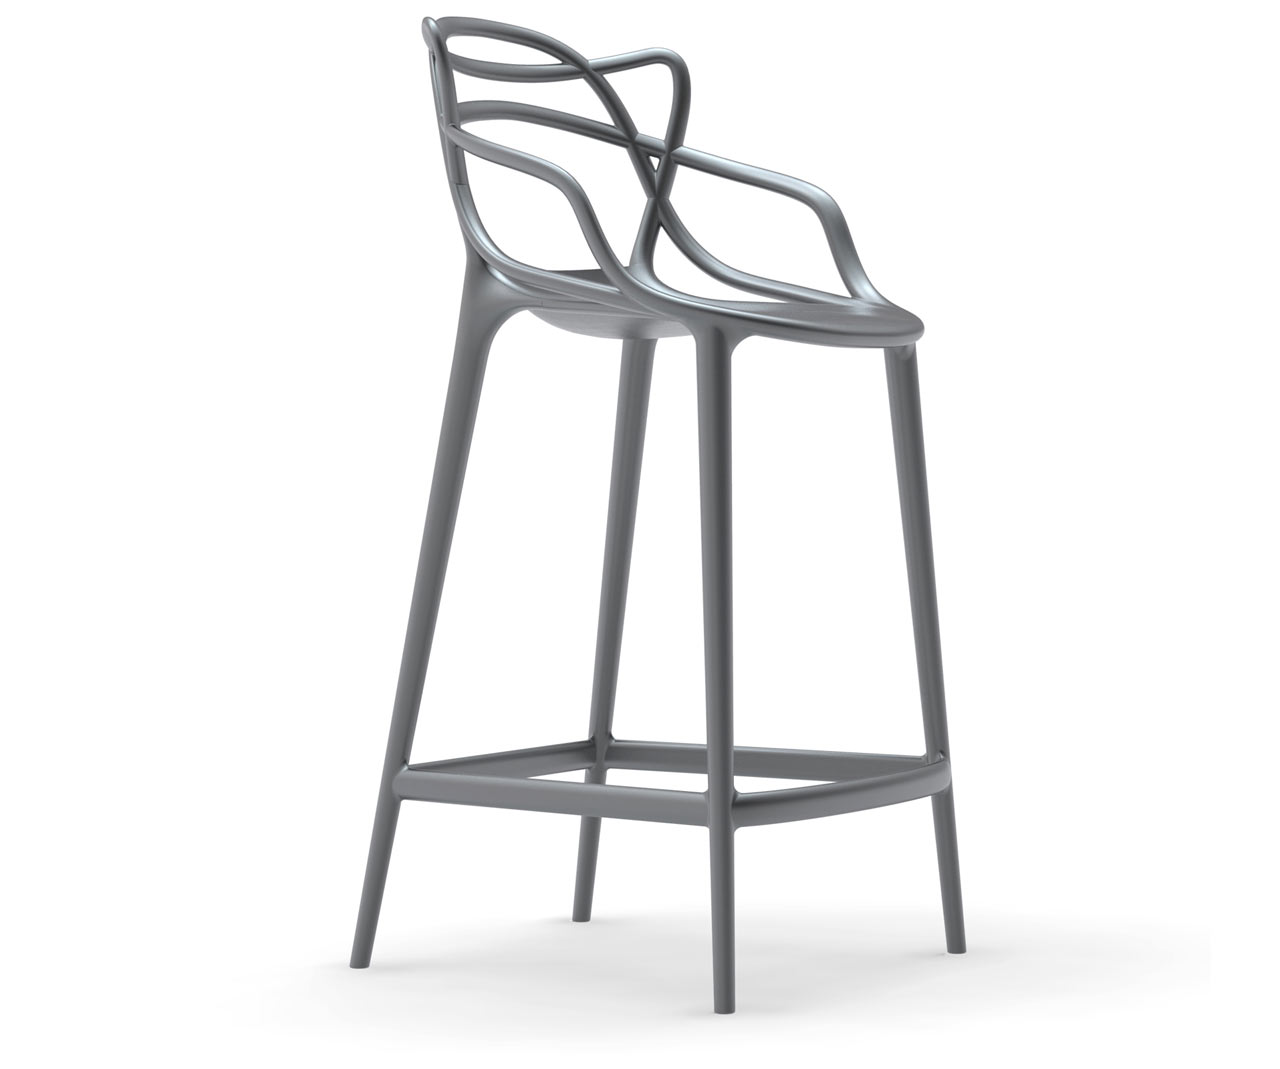 MASTERS-stool-for-Kartell-eugeni-quitllet-Starck-1